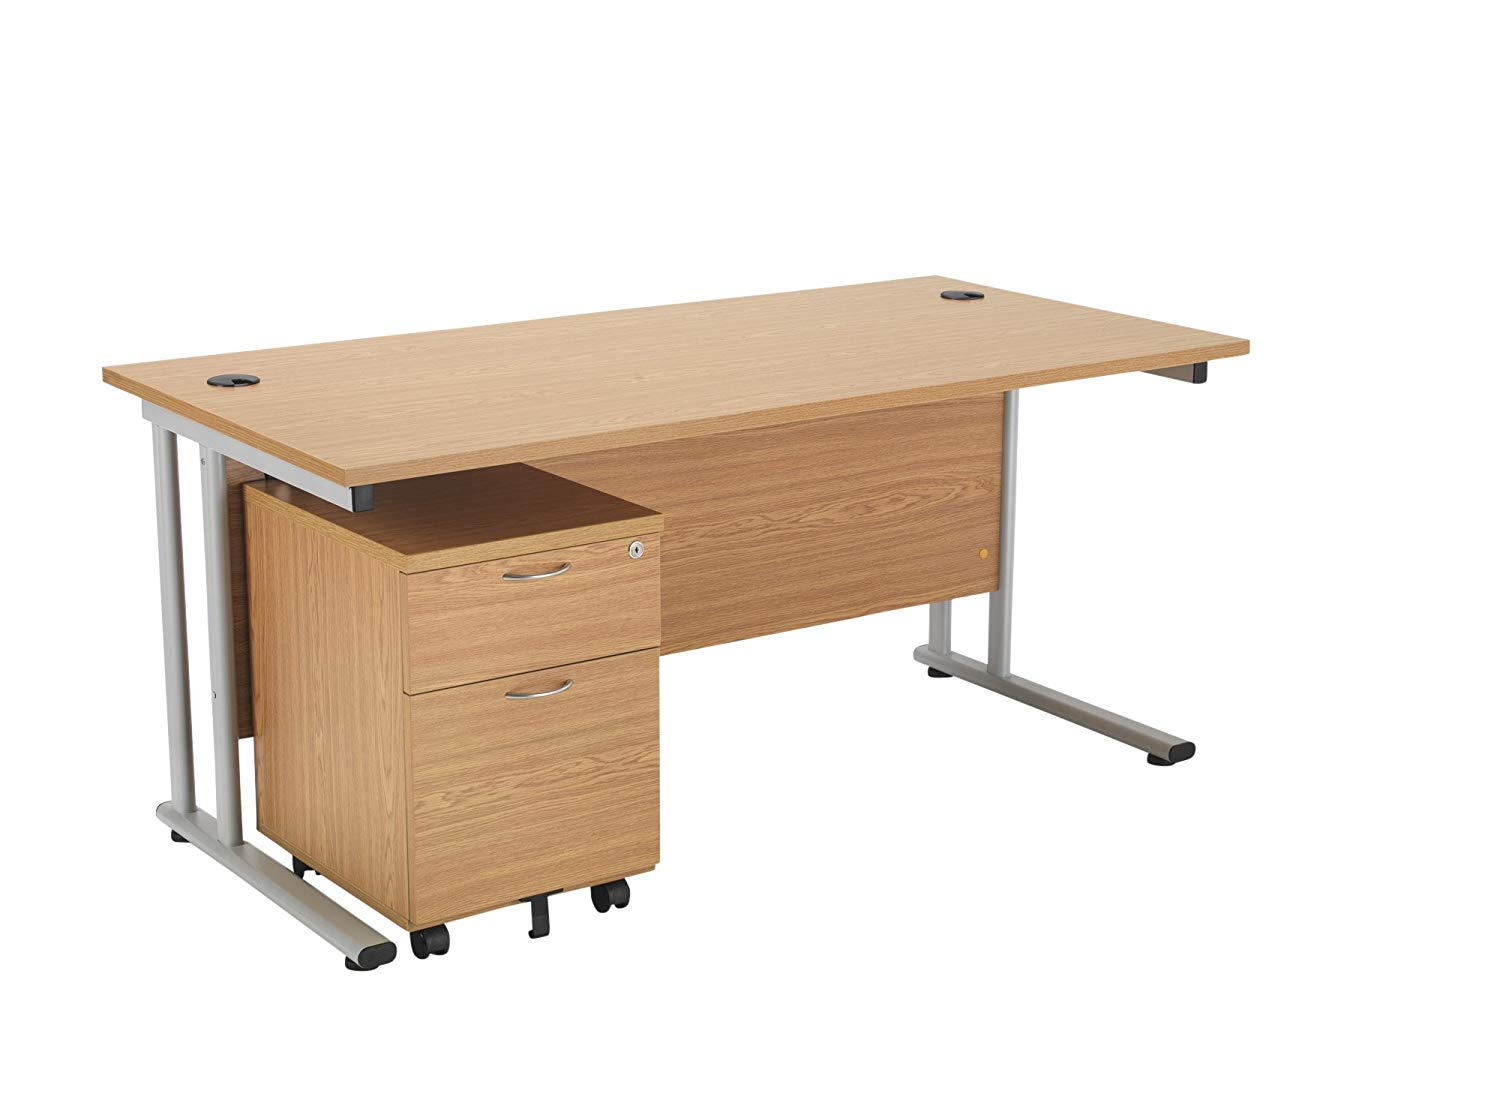 Office Hippo Professional Cantilever Office Desk With 2 Drawer Mobile Pedestal,140 x 80 x 73 cm